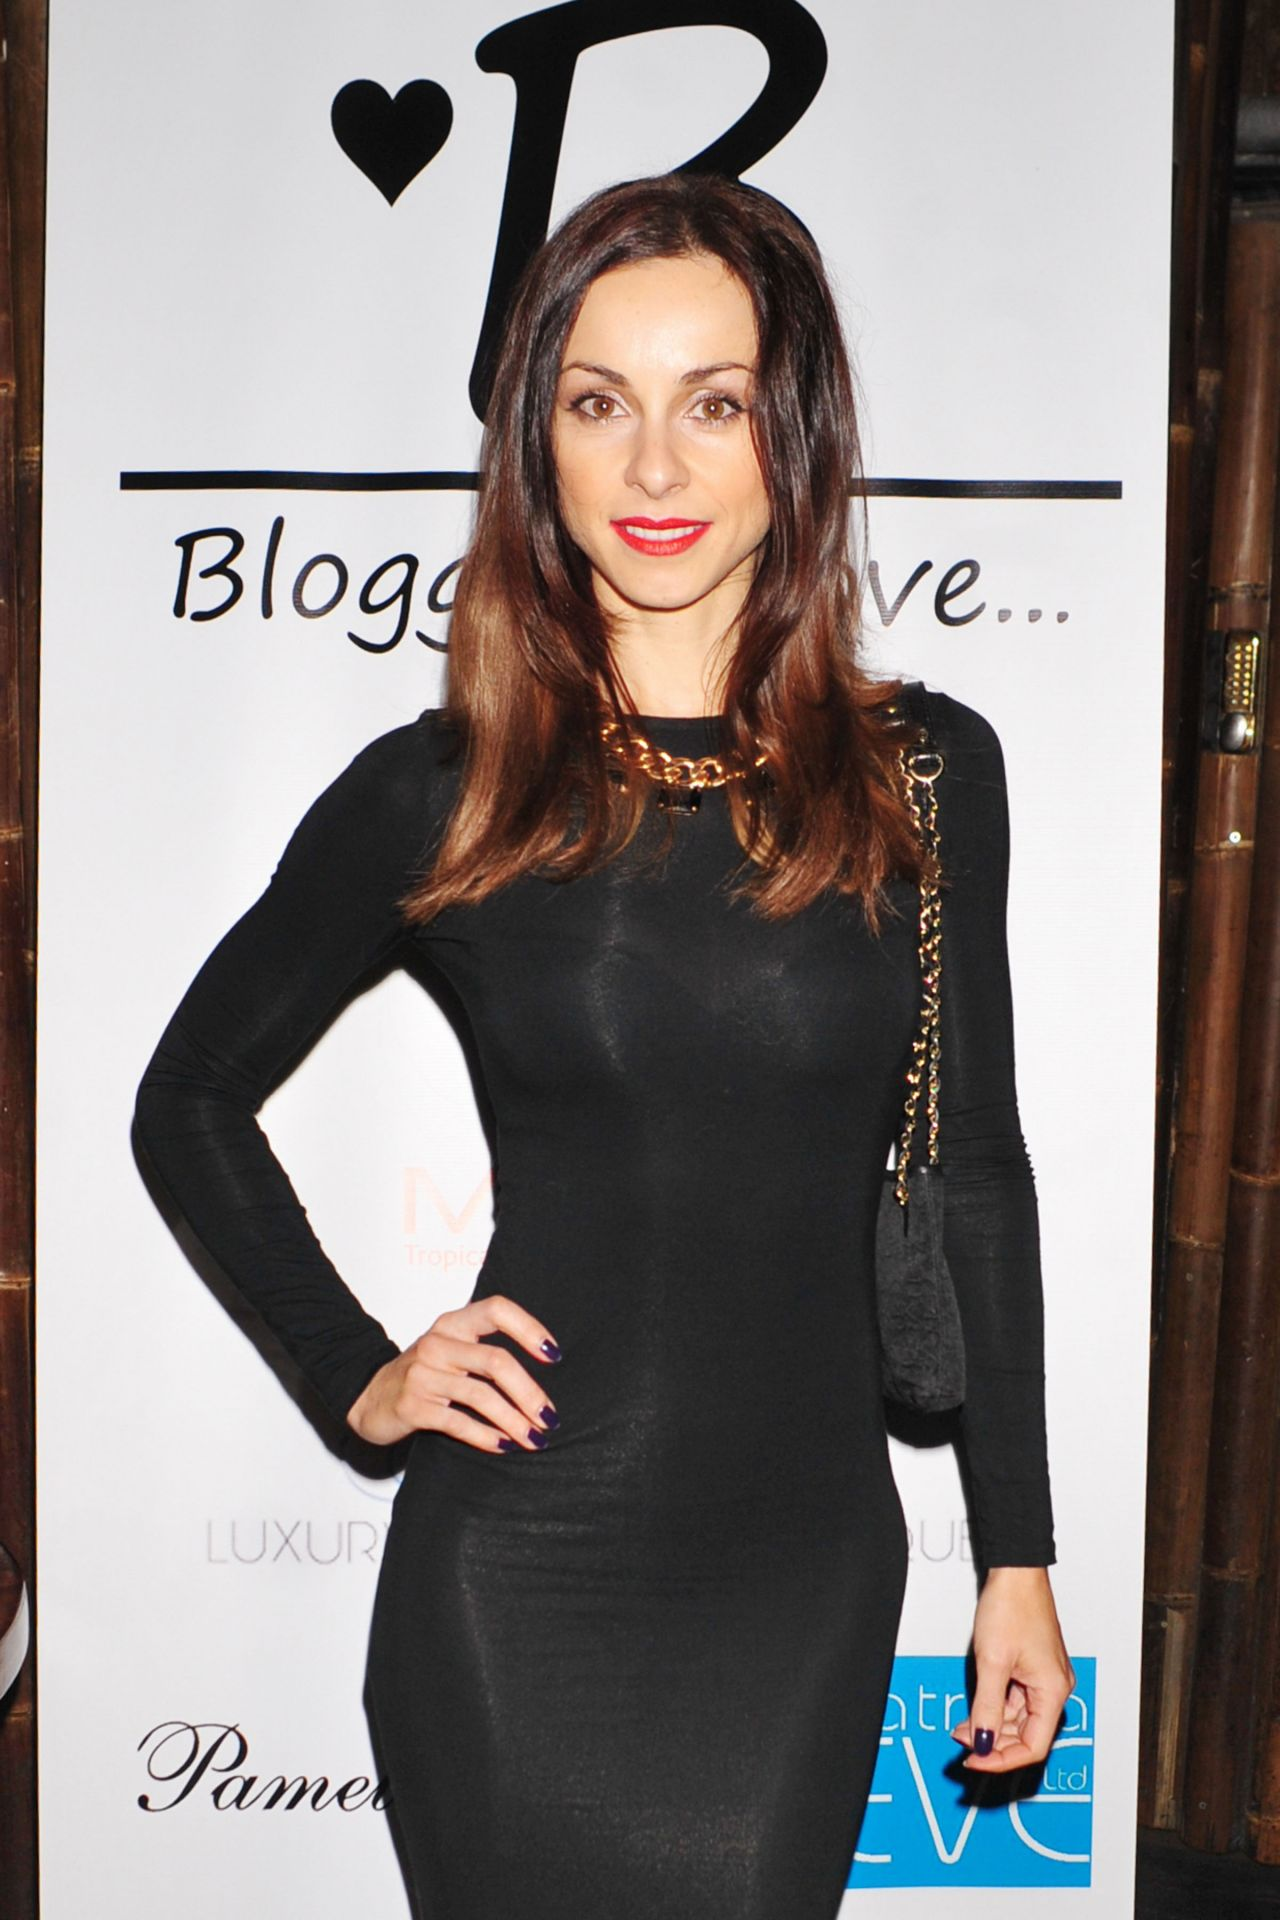 Lindsay Armaou - Bloggers Love Secret Garden Event - London, January 2014